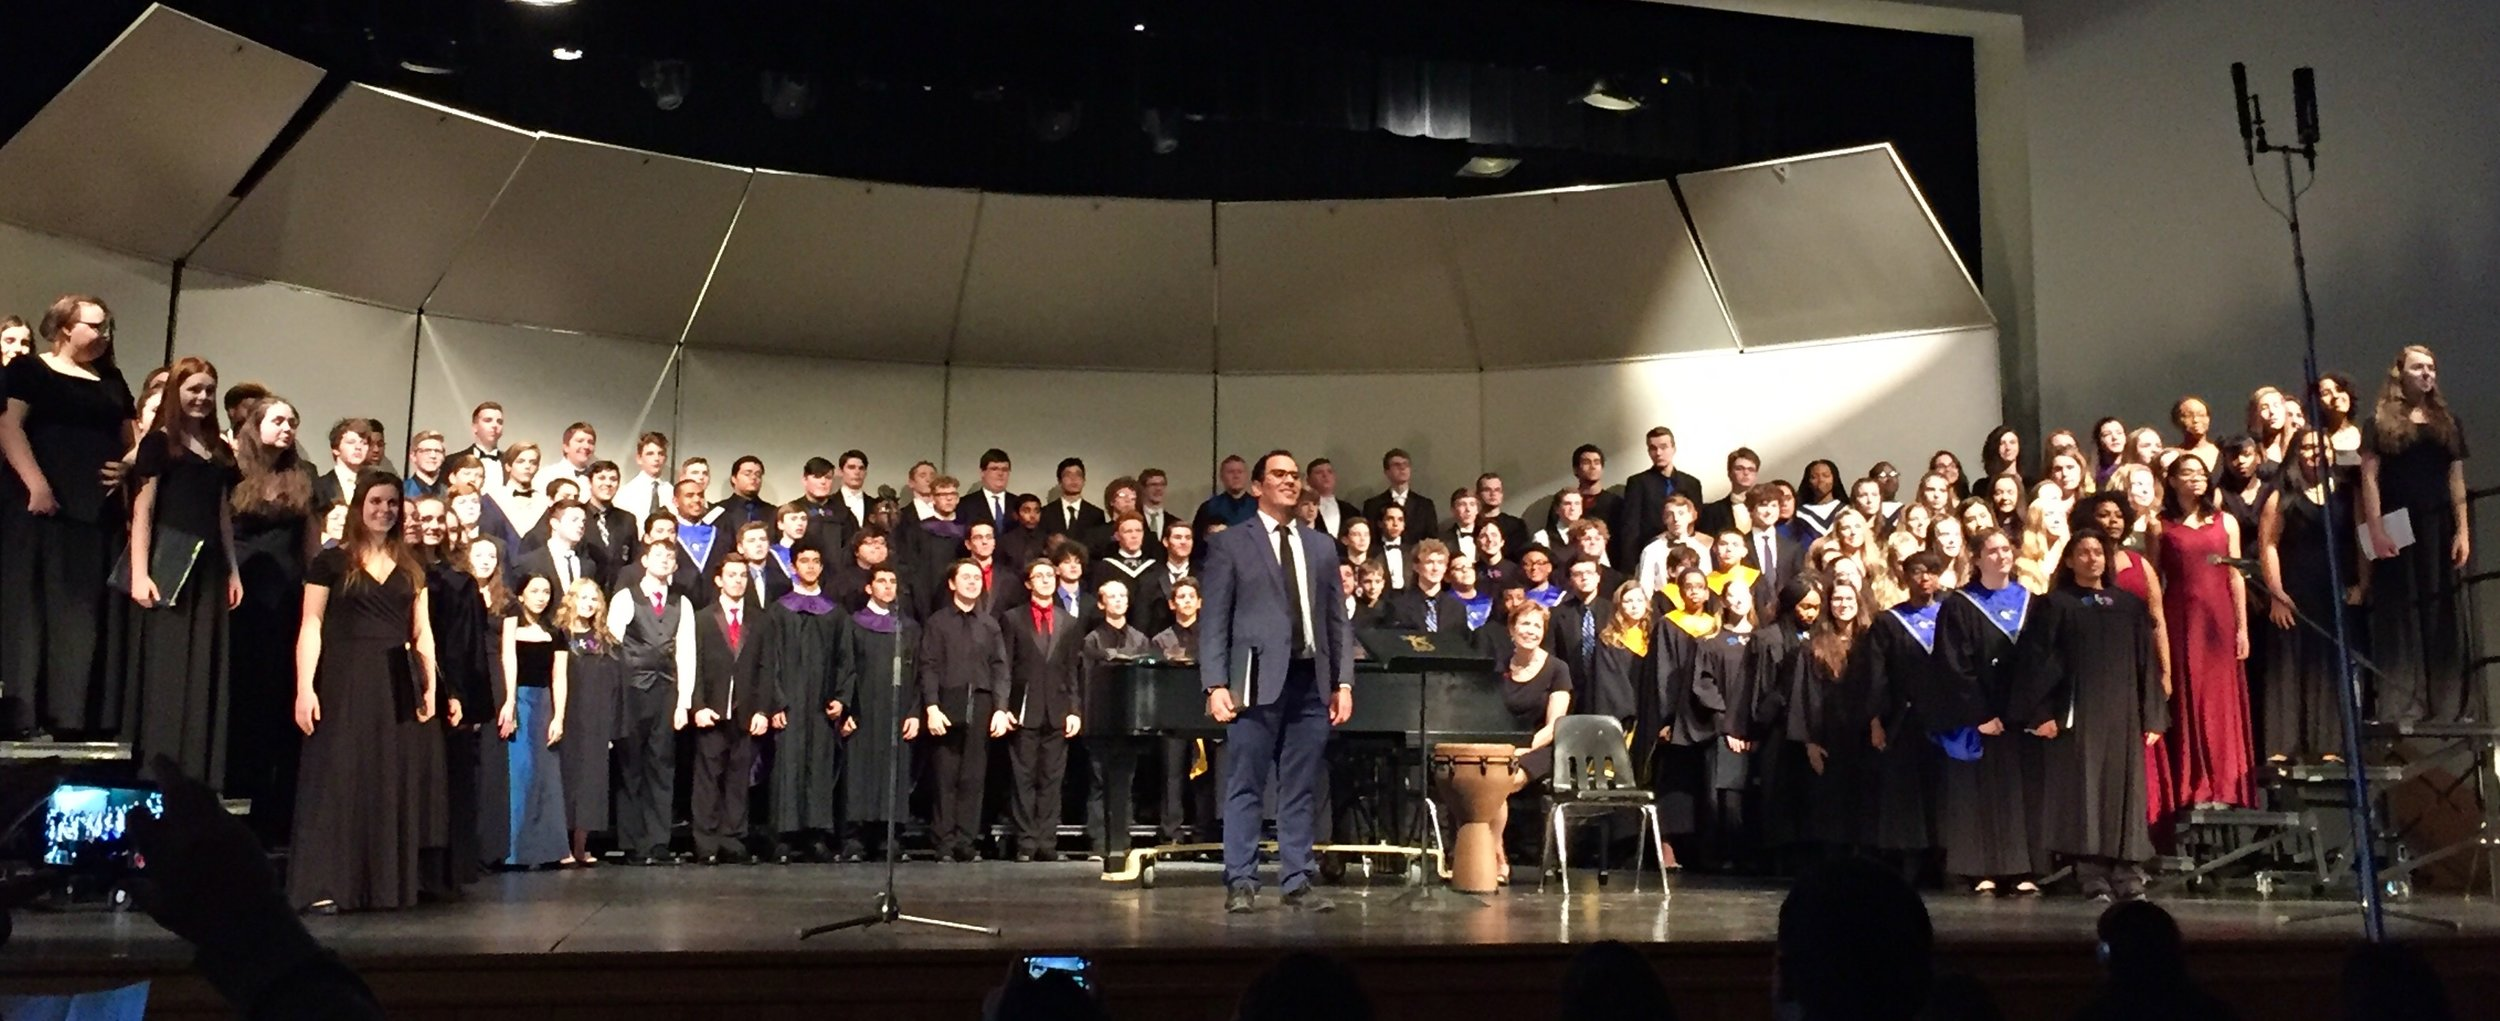 Twelve SCA High School Choral Students were selected to perform with the KC Metro Honors Choir, performing at Lee's Summit High School.